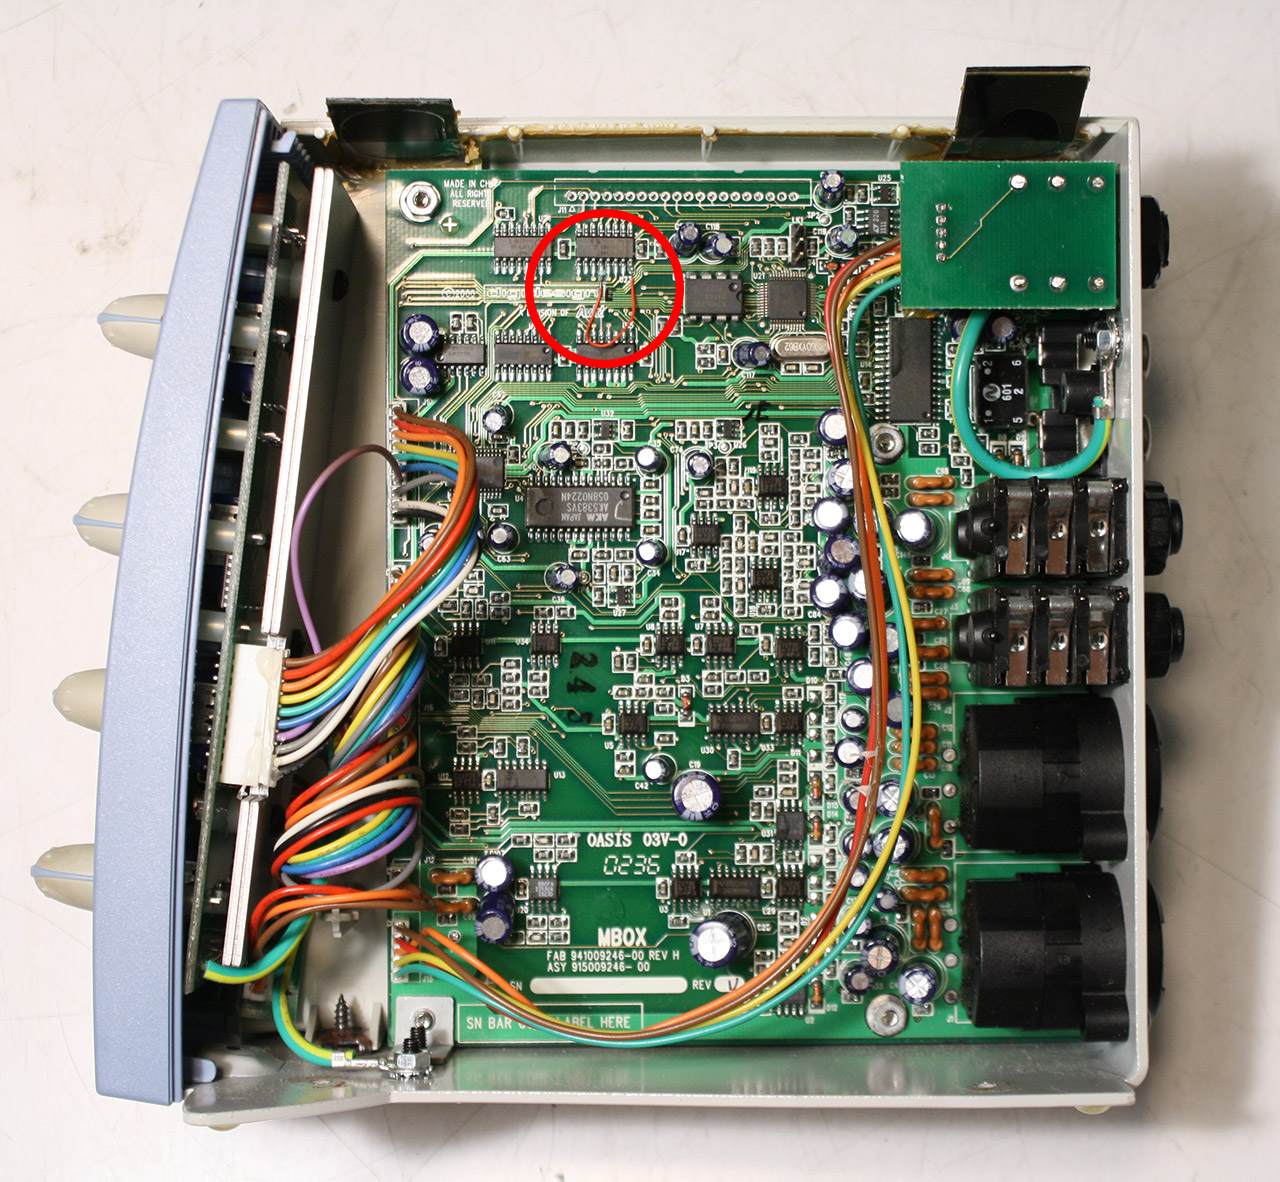 Digidesign Mbox 1 Standalone Mod Zach Poff How To Solder Wires When Circuit Bending Hacks Mods Circuitry Inside Wide